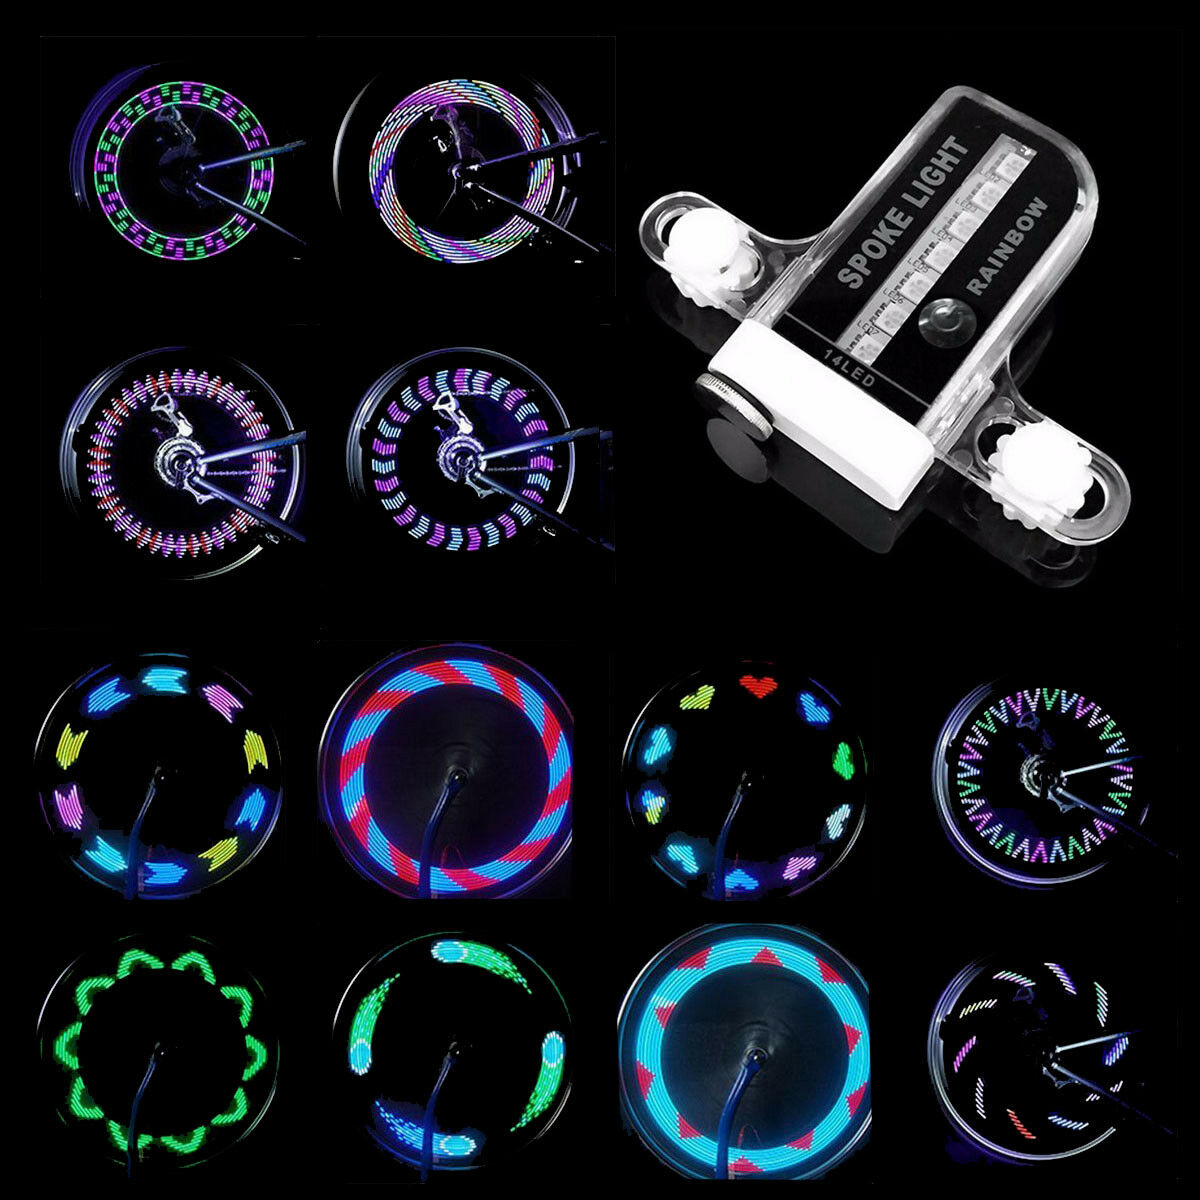 Bike LED Spoke  Lights - 14 LED Waterproof Night Cycling Safety Accessory  select from the newest brands like